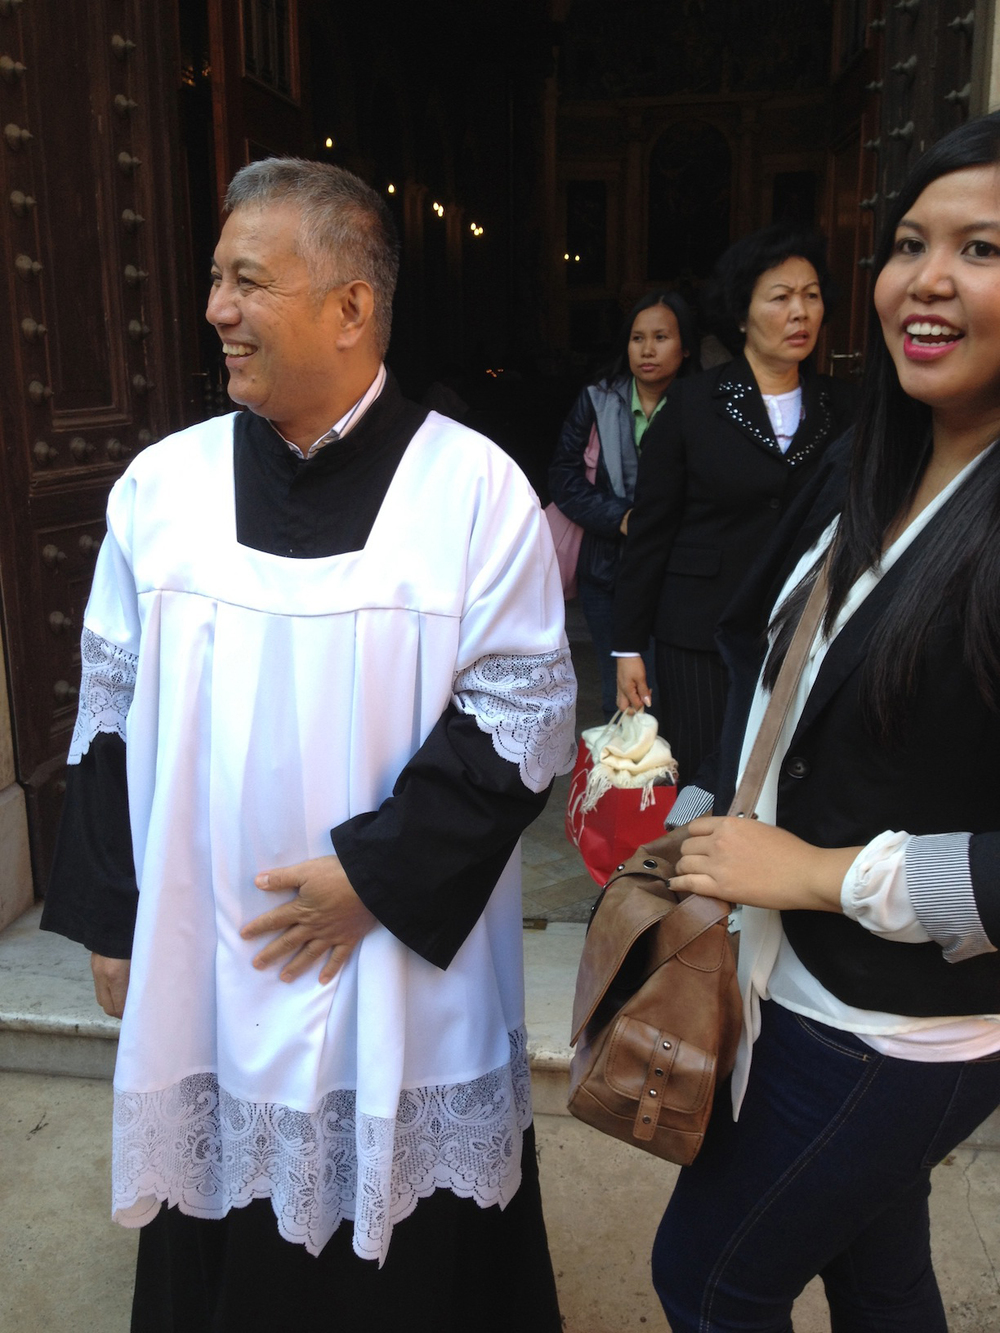 The parish priest of the church  (Photo by John Silva)